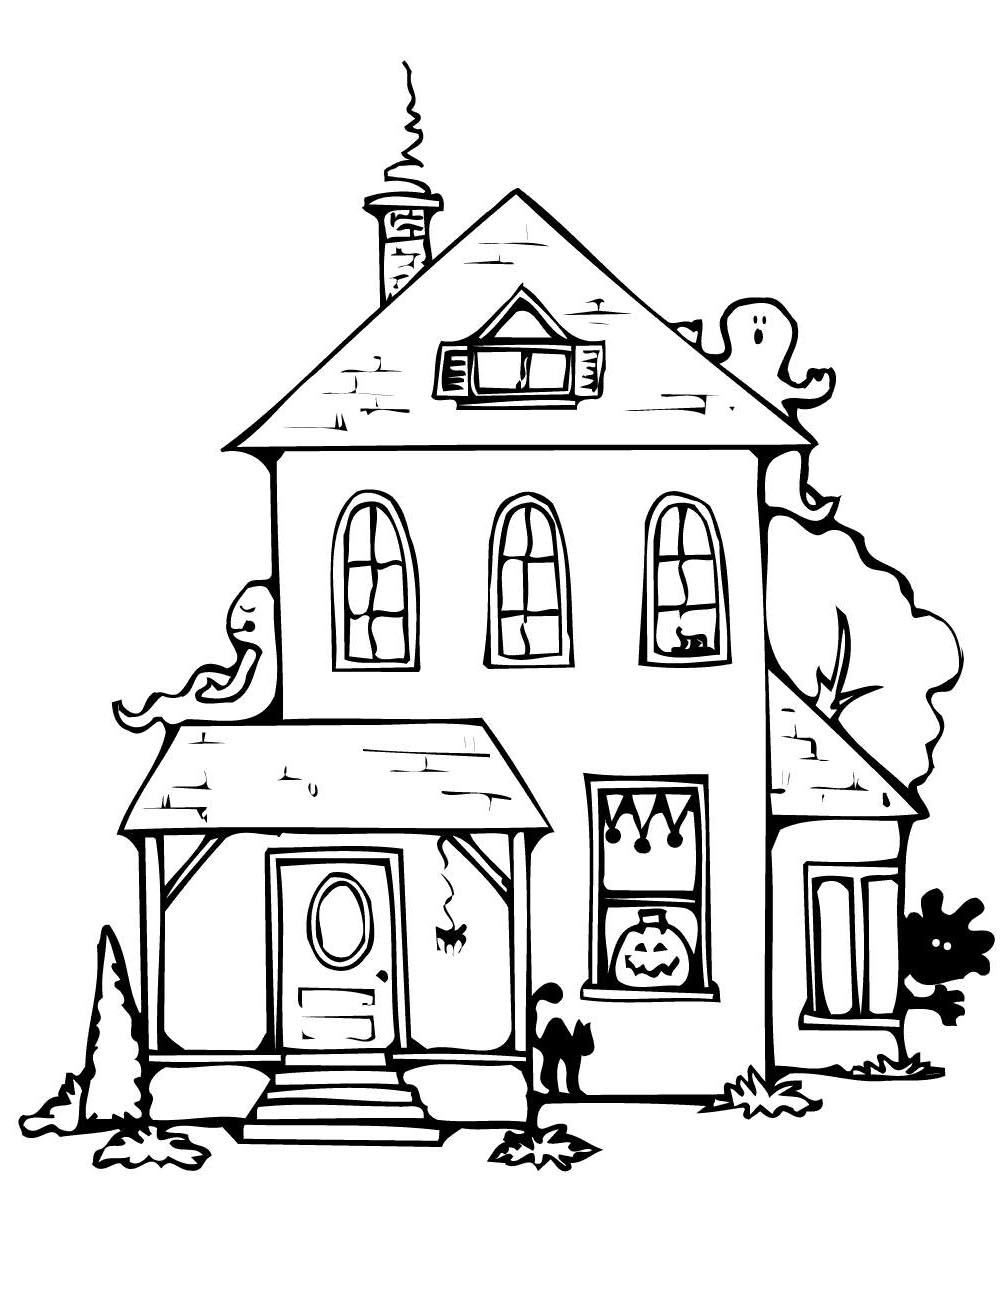 simple haunted house coloring pages simple haunted house drawing at getdrawings free download coloring simple haunted pages house